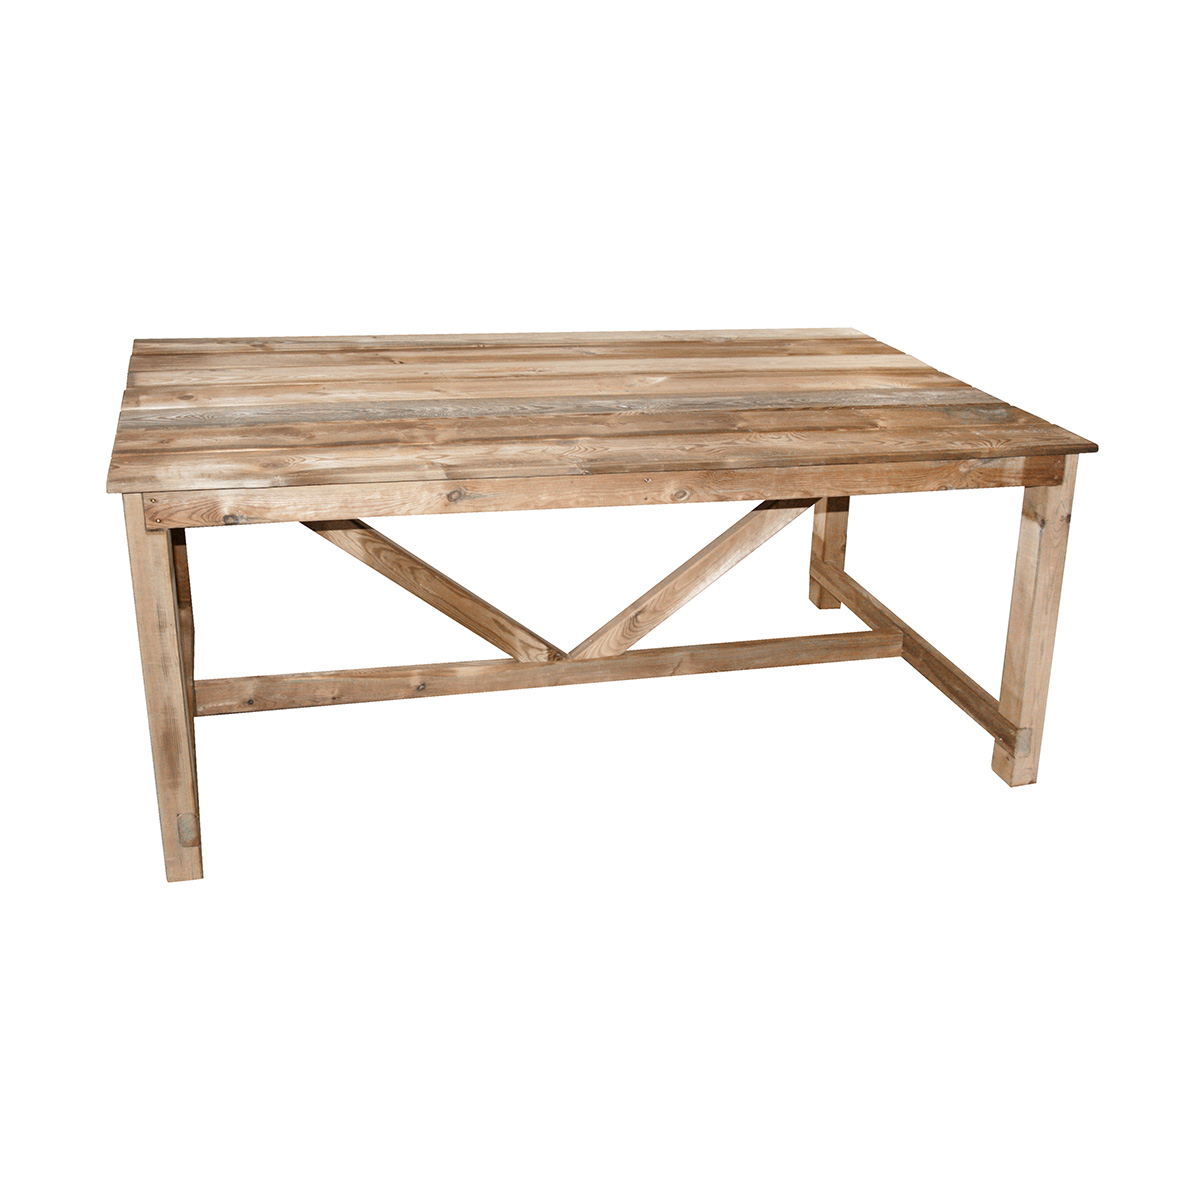 Table de jardin en bois normand